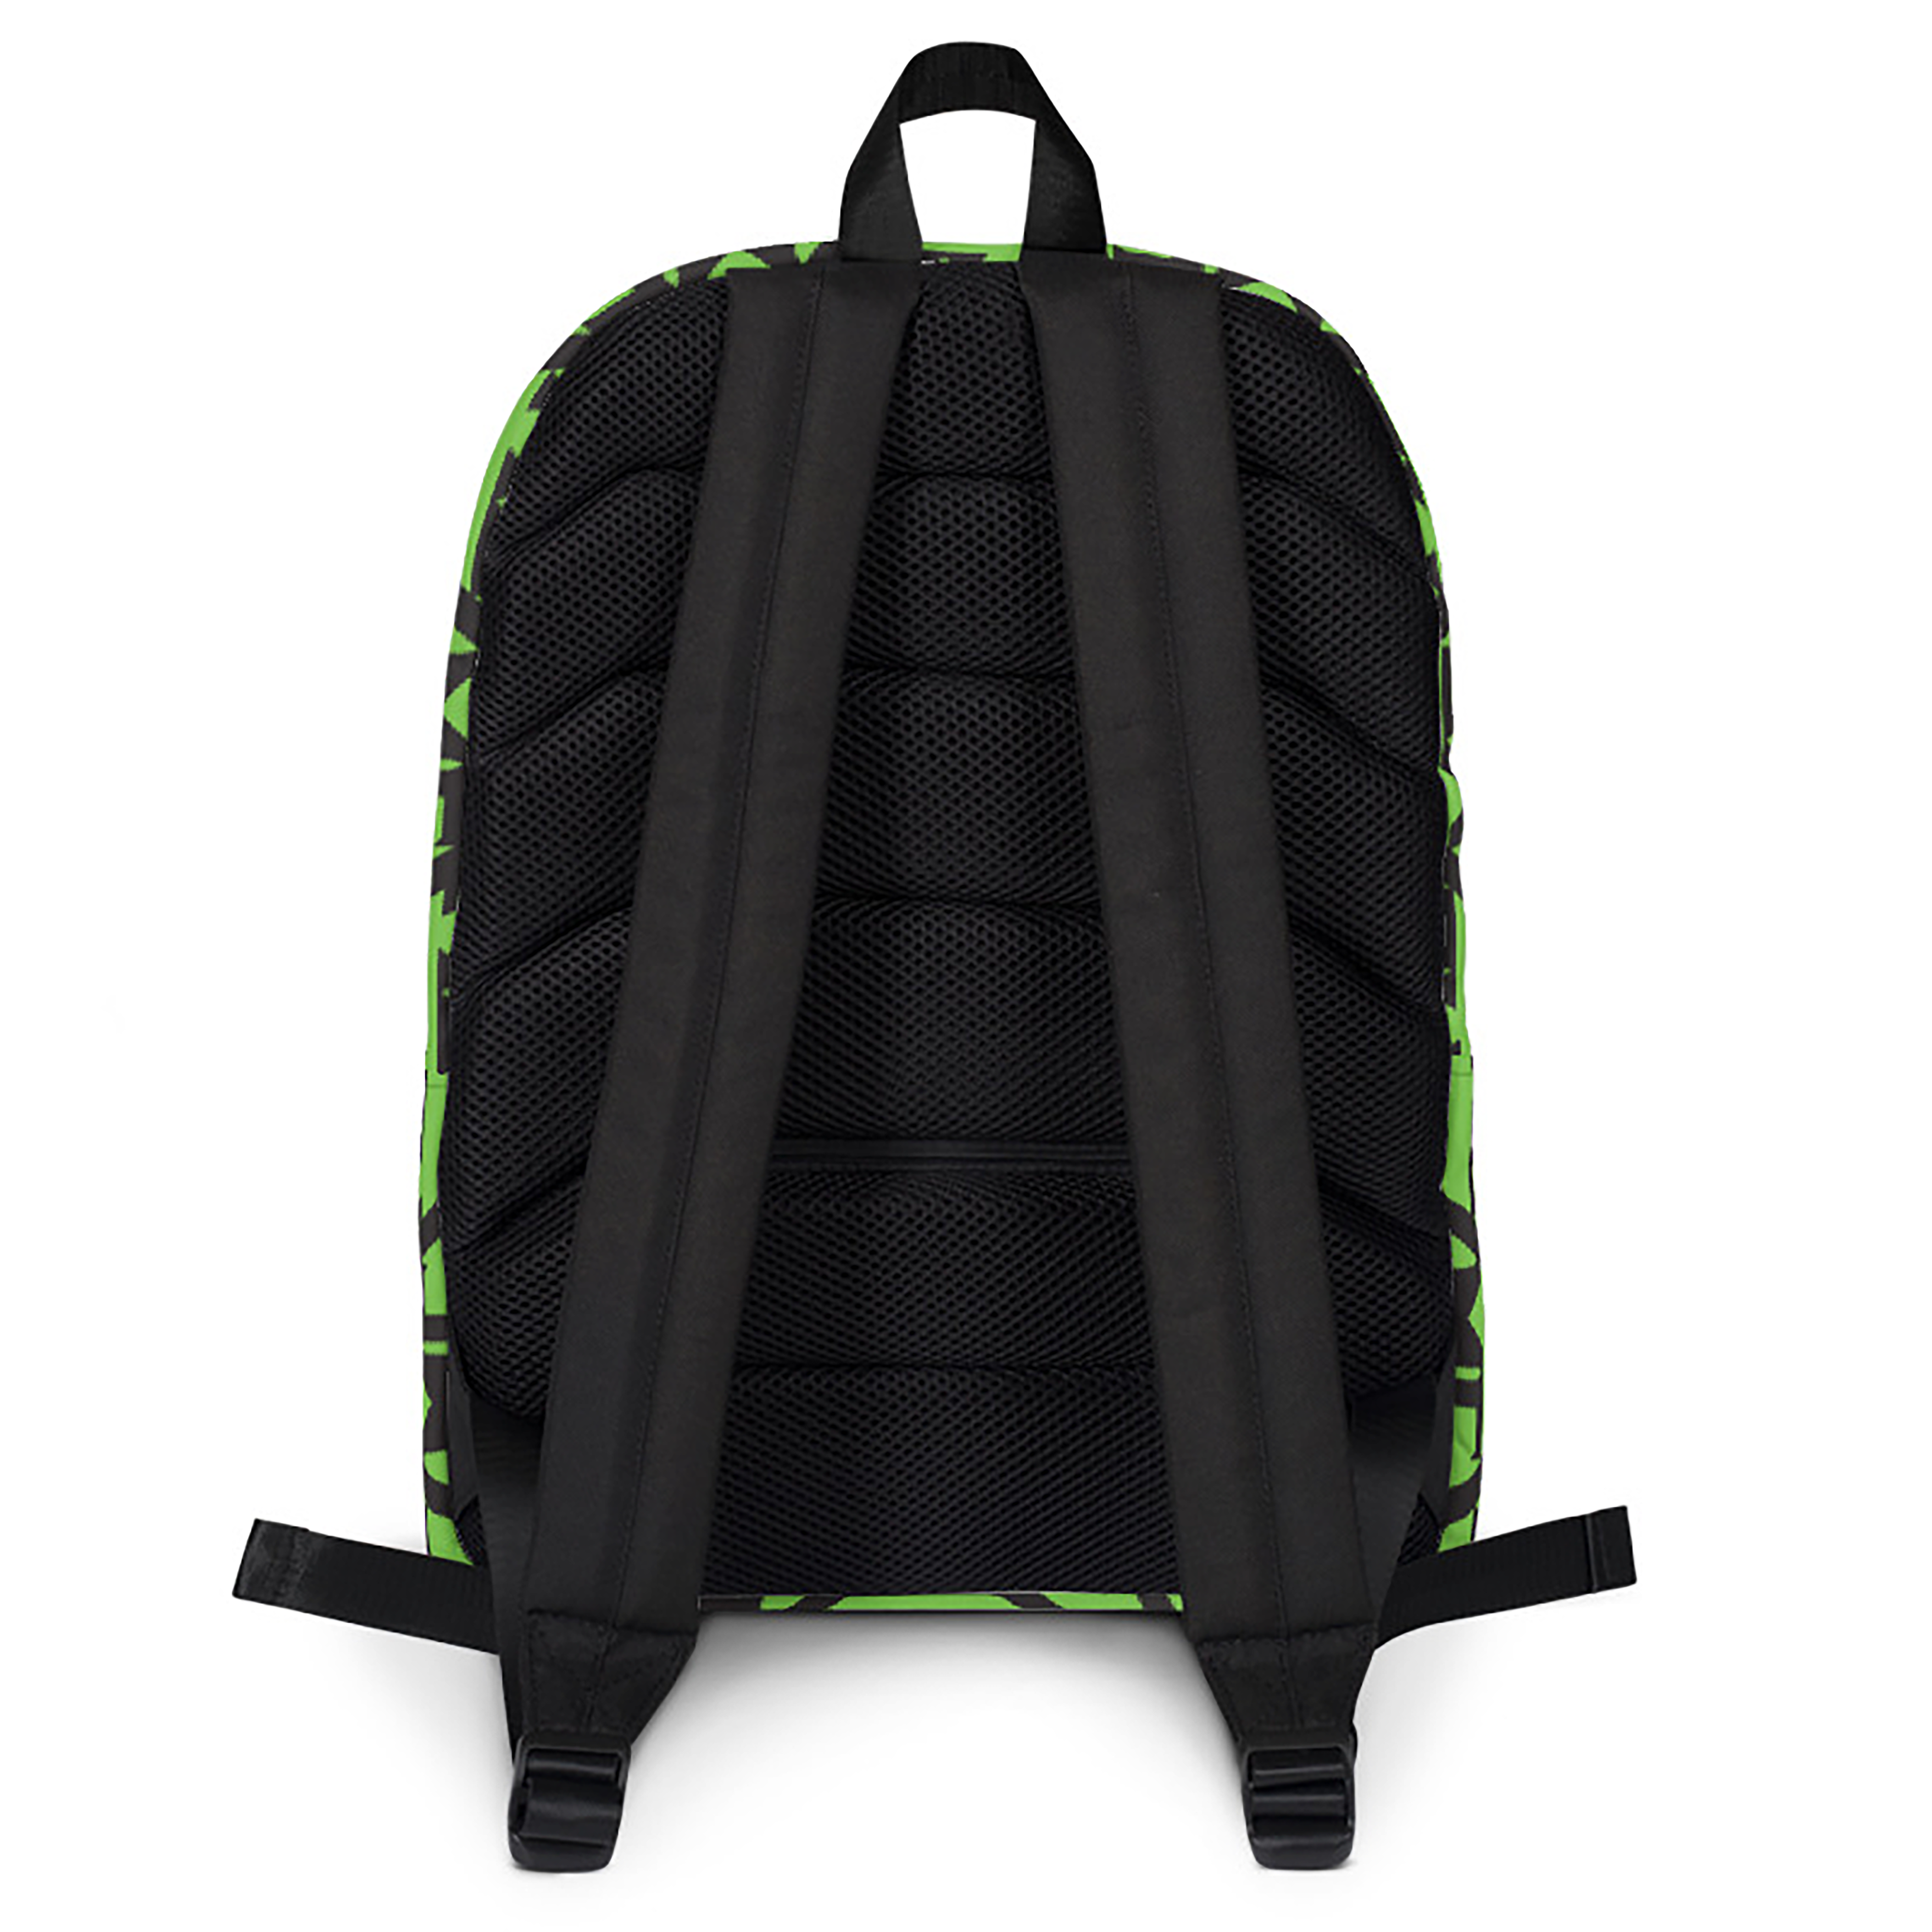 ME HONEYCOMB PATTERN BACKPACK